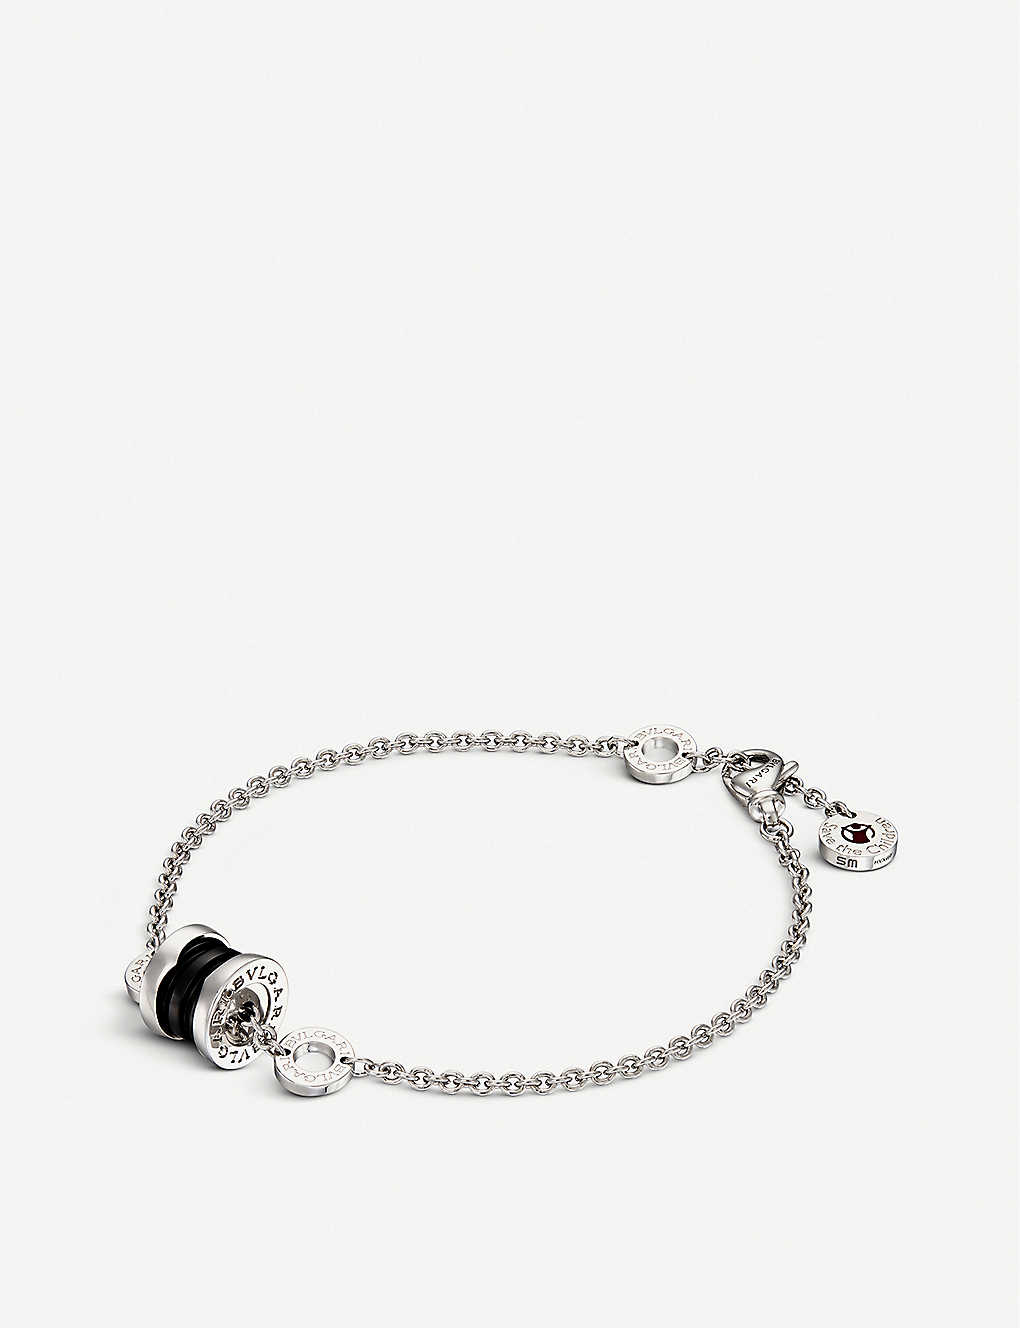 BVLGARI Save The Children sterling silver charm bracelet